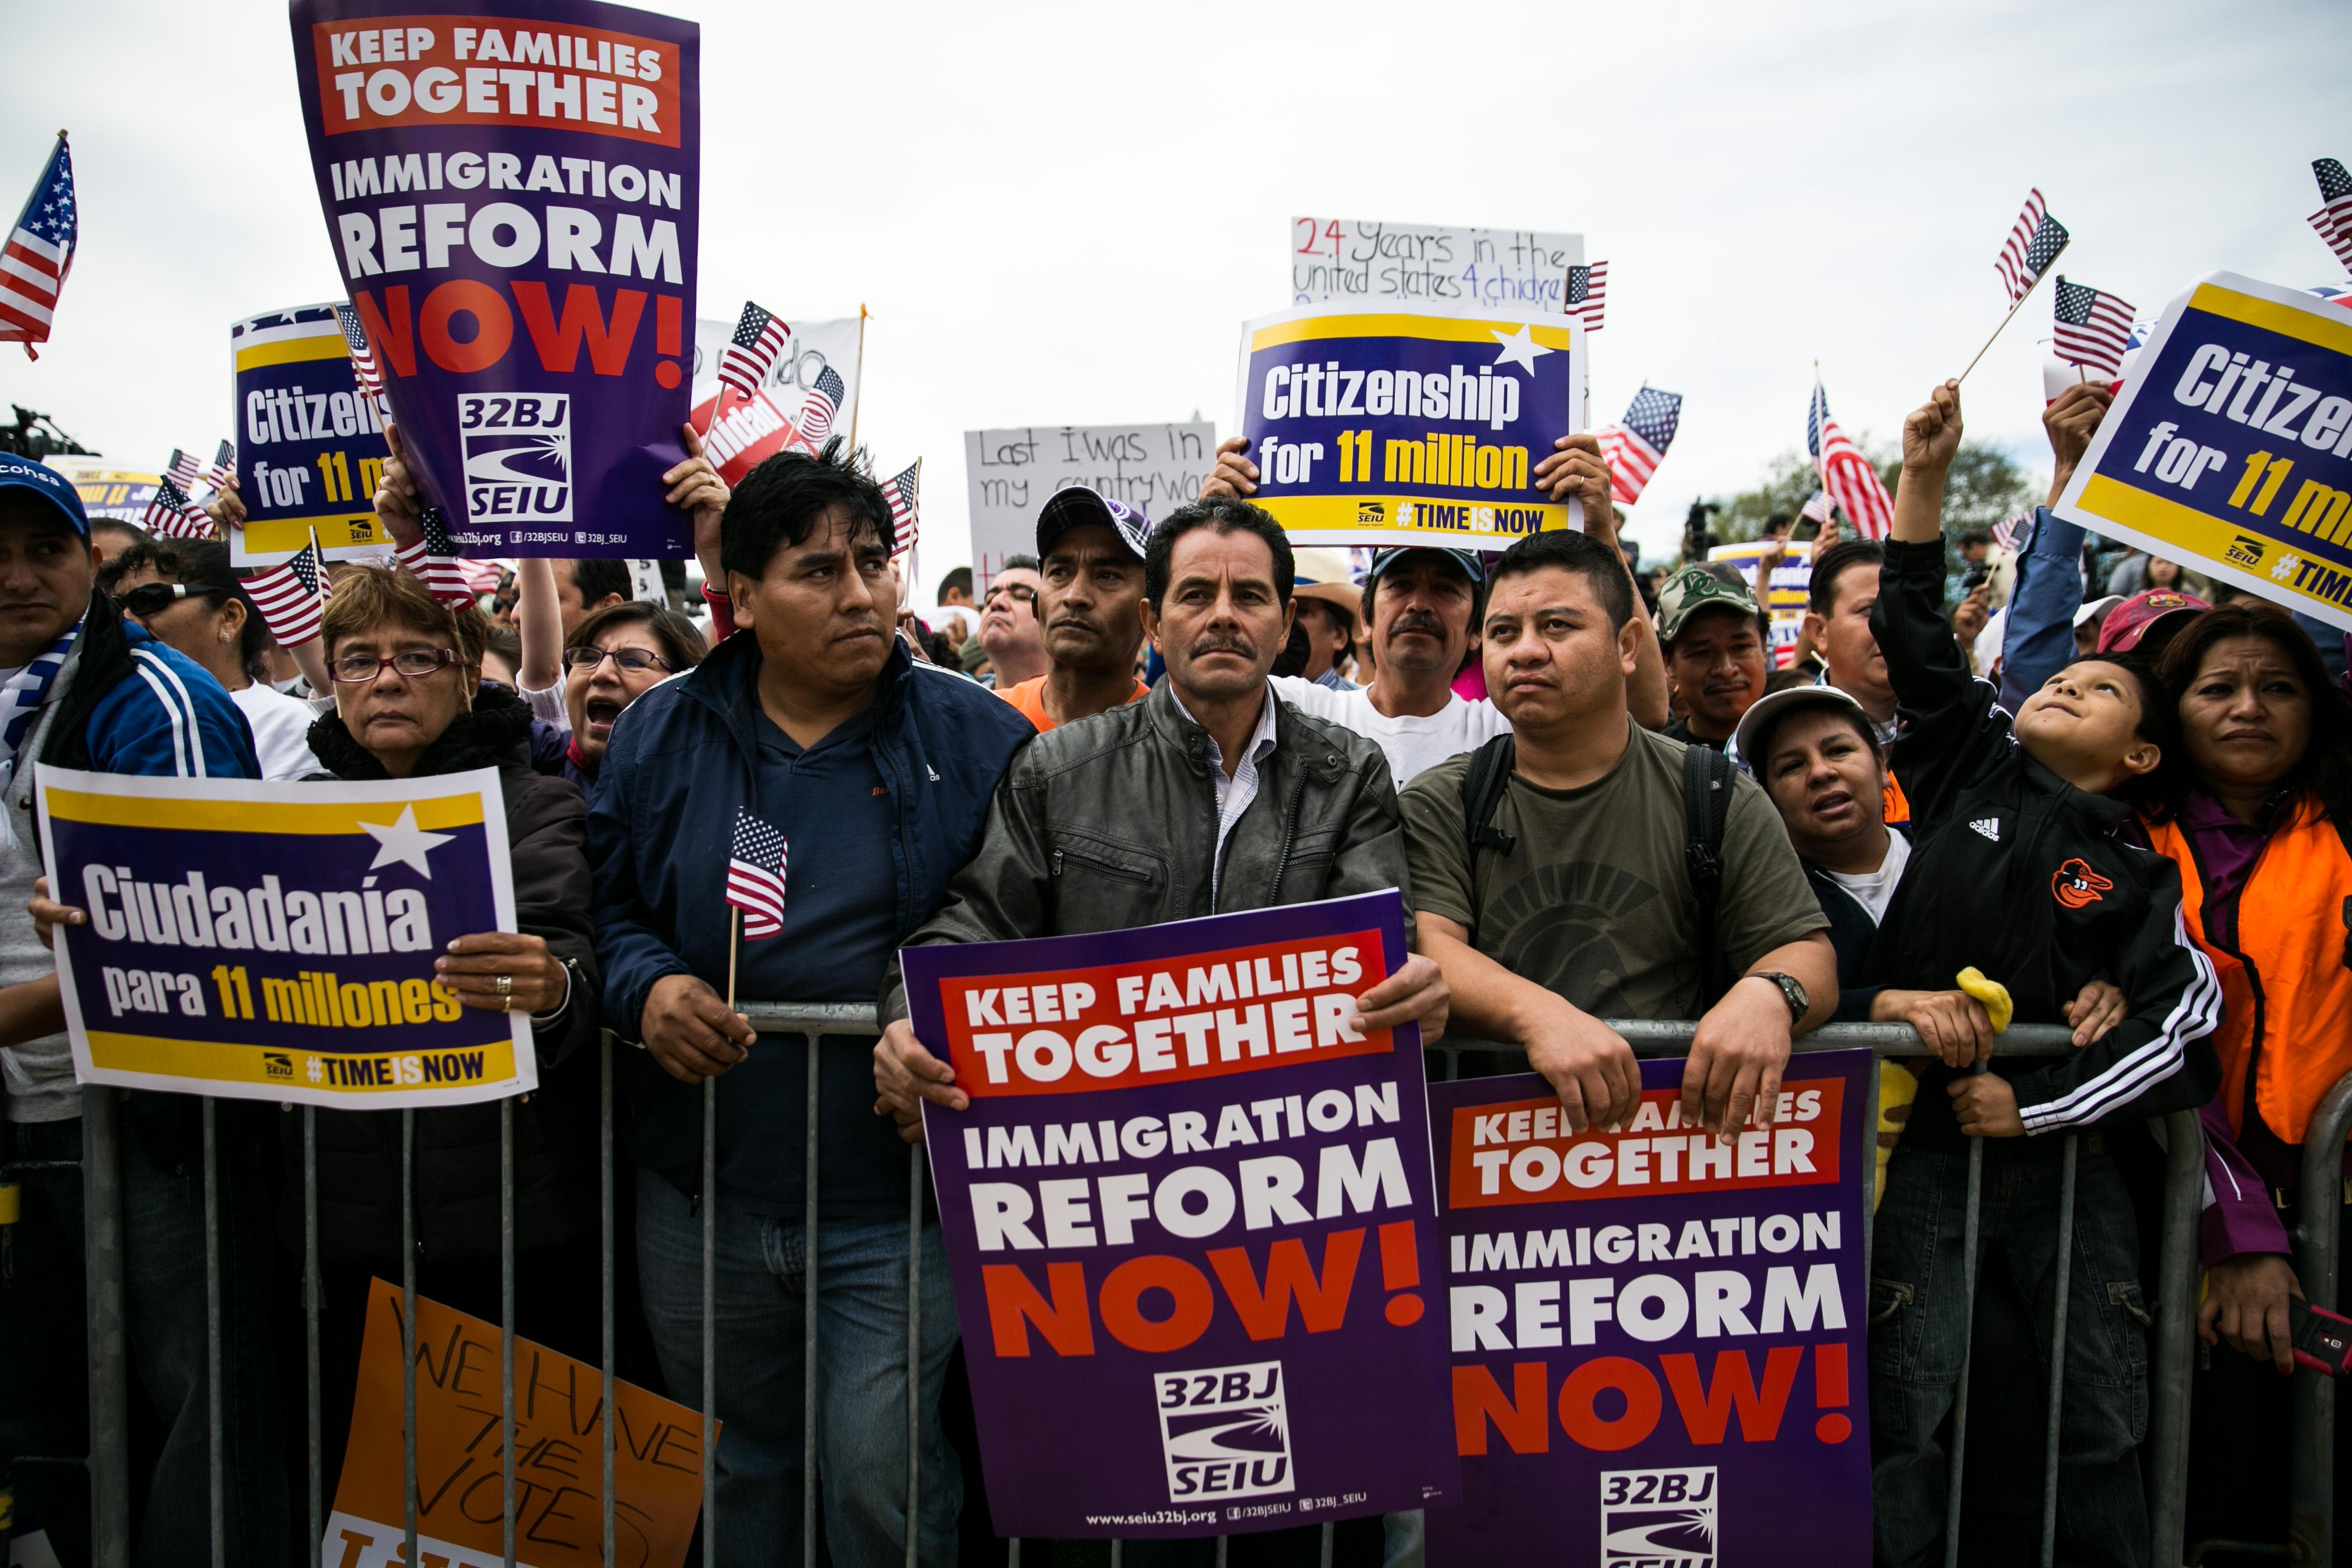 a look at the immigration reform in america A look at the three immigration reform bills in congress ncm, news report, elena shore posted: jul 27, 2005 congress is expected to enact the first major overhaul of immigration policy since 1996.